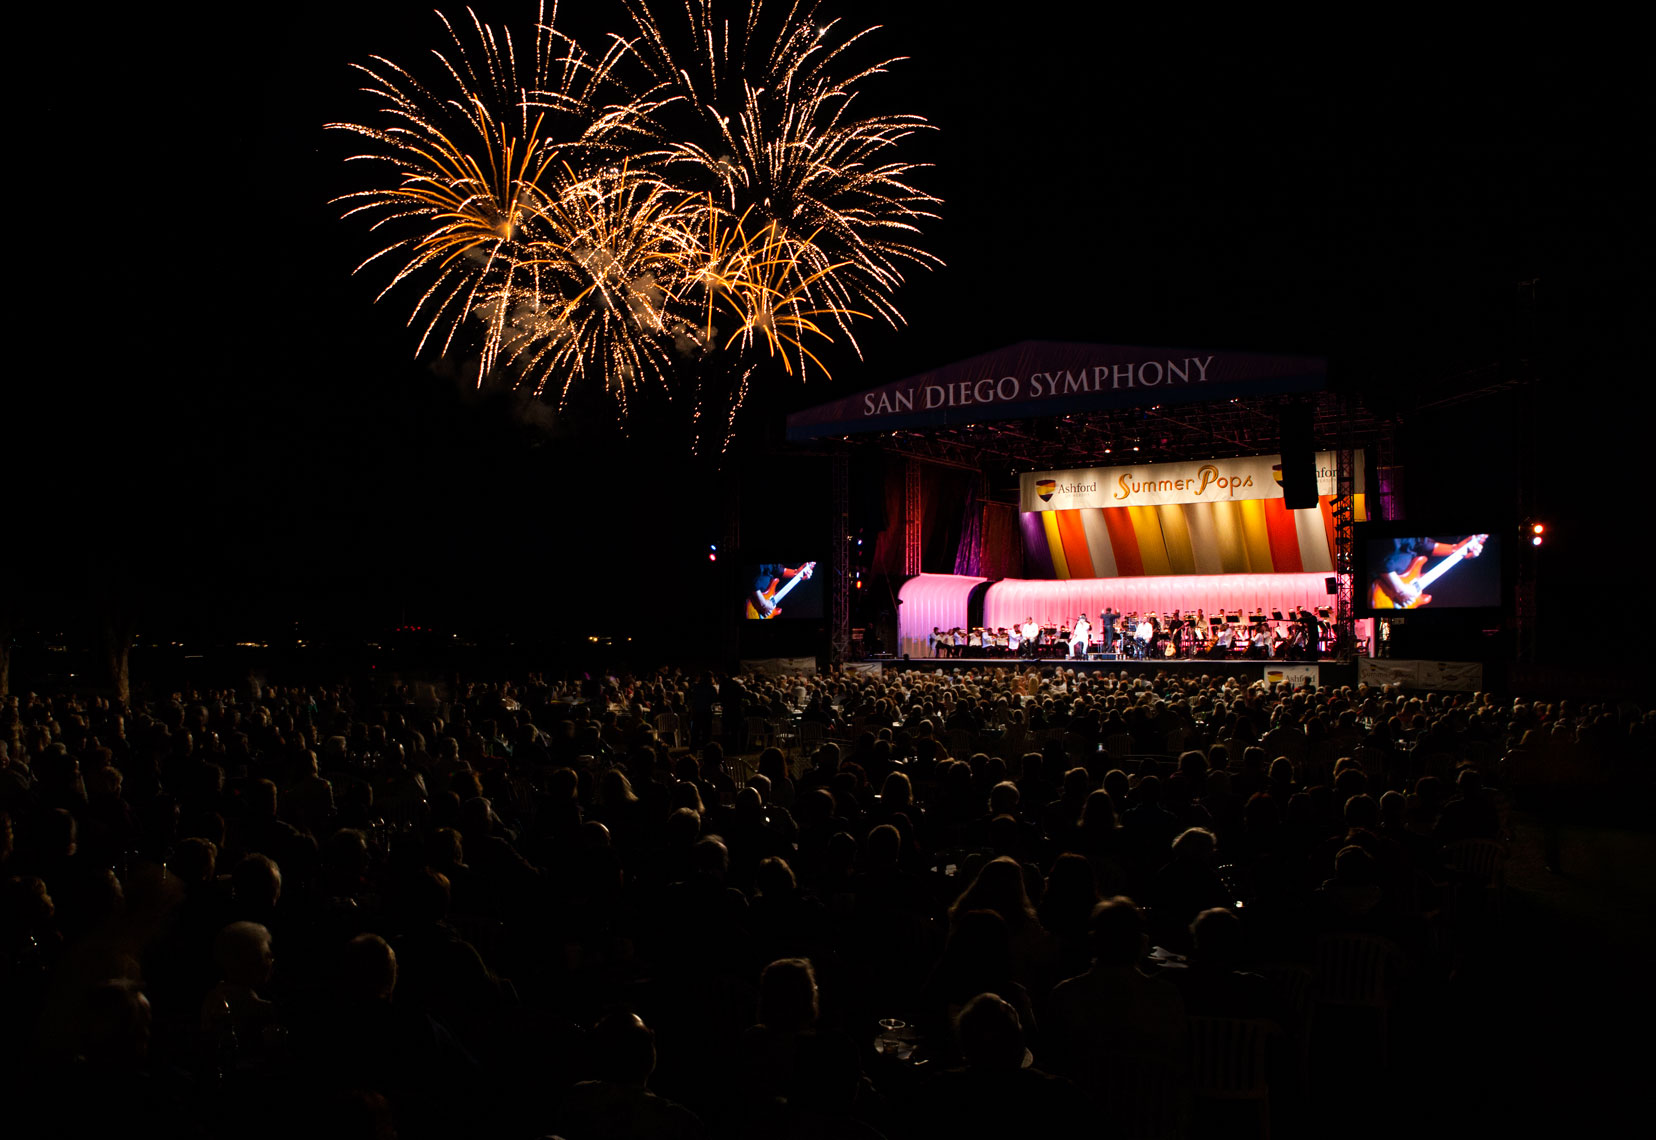 Advertising Photography San Diego Symphony Summer Pops Concert Fireworks